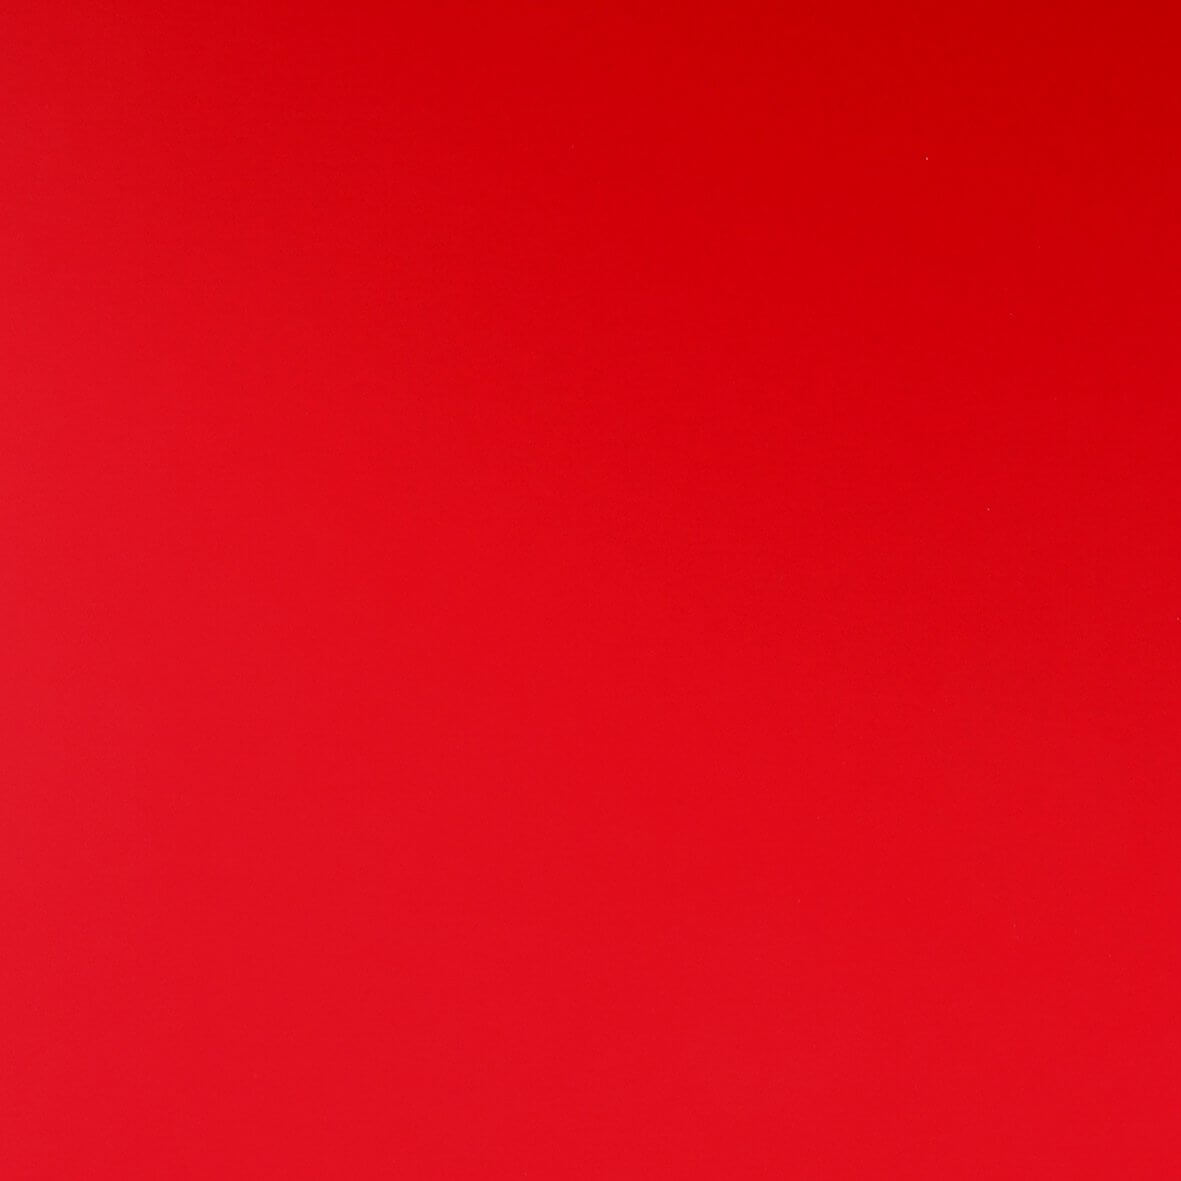 Bright Red A4 Soft Touch Card